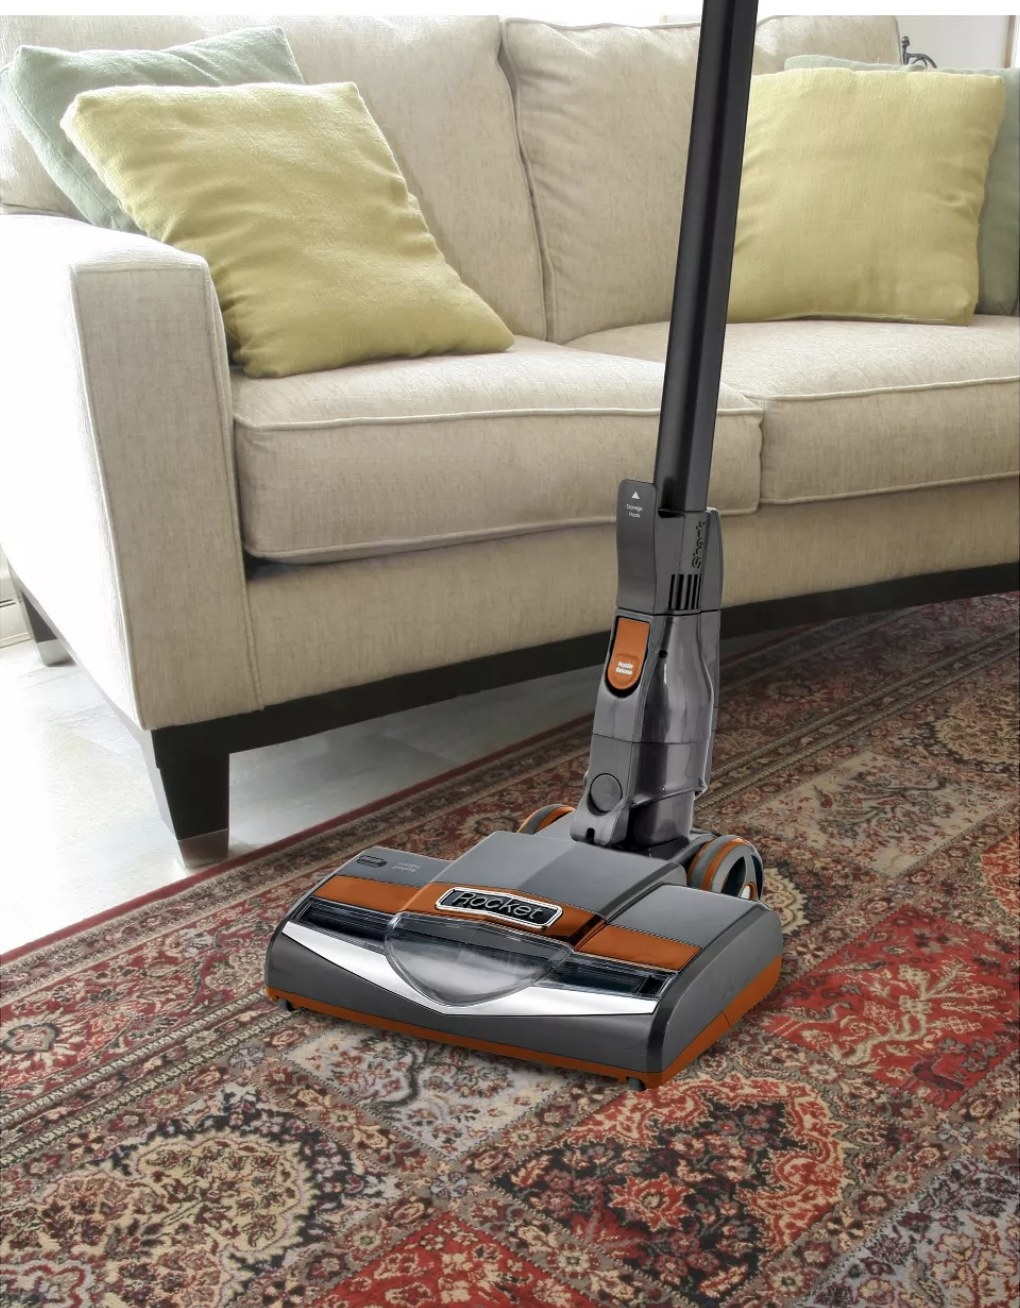 A Shark Rocket ultra-light vacuum is vacuuming a rug next to a couch